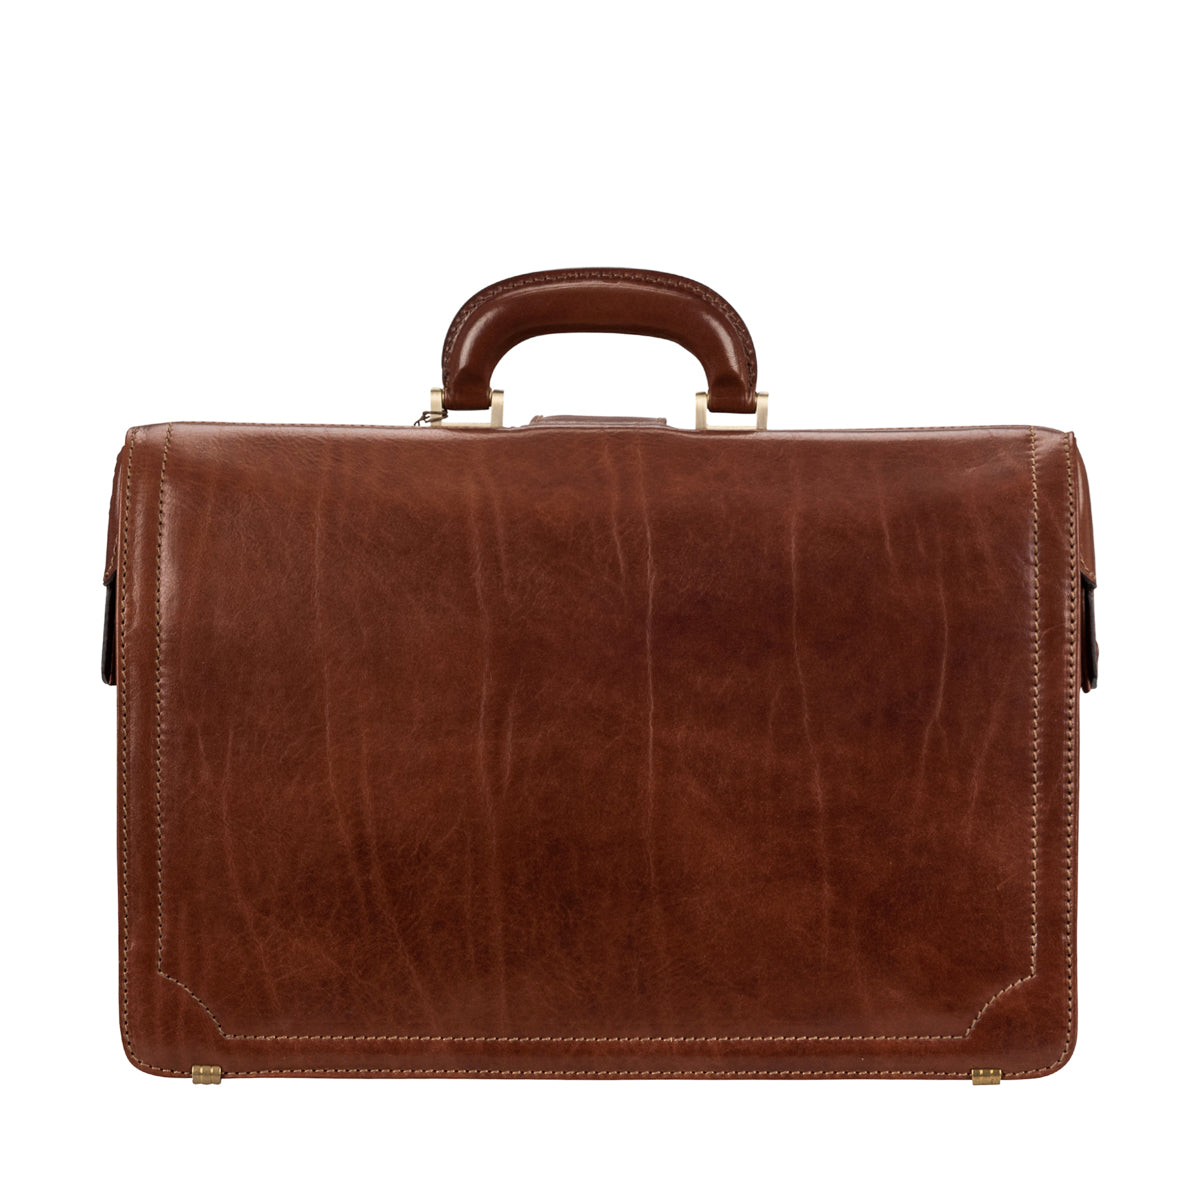 Image 4 of the 'Basilio' Chestnut Veg-Tanned Leather Executive Briefcase